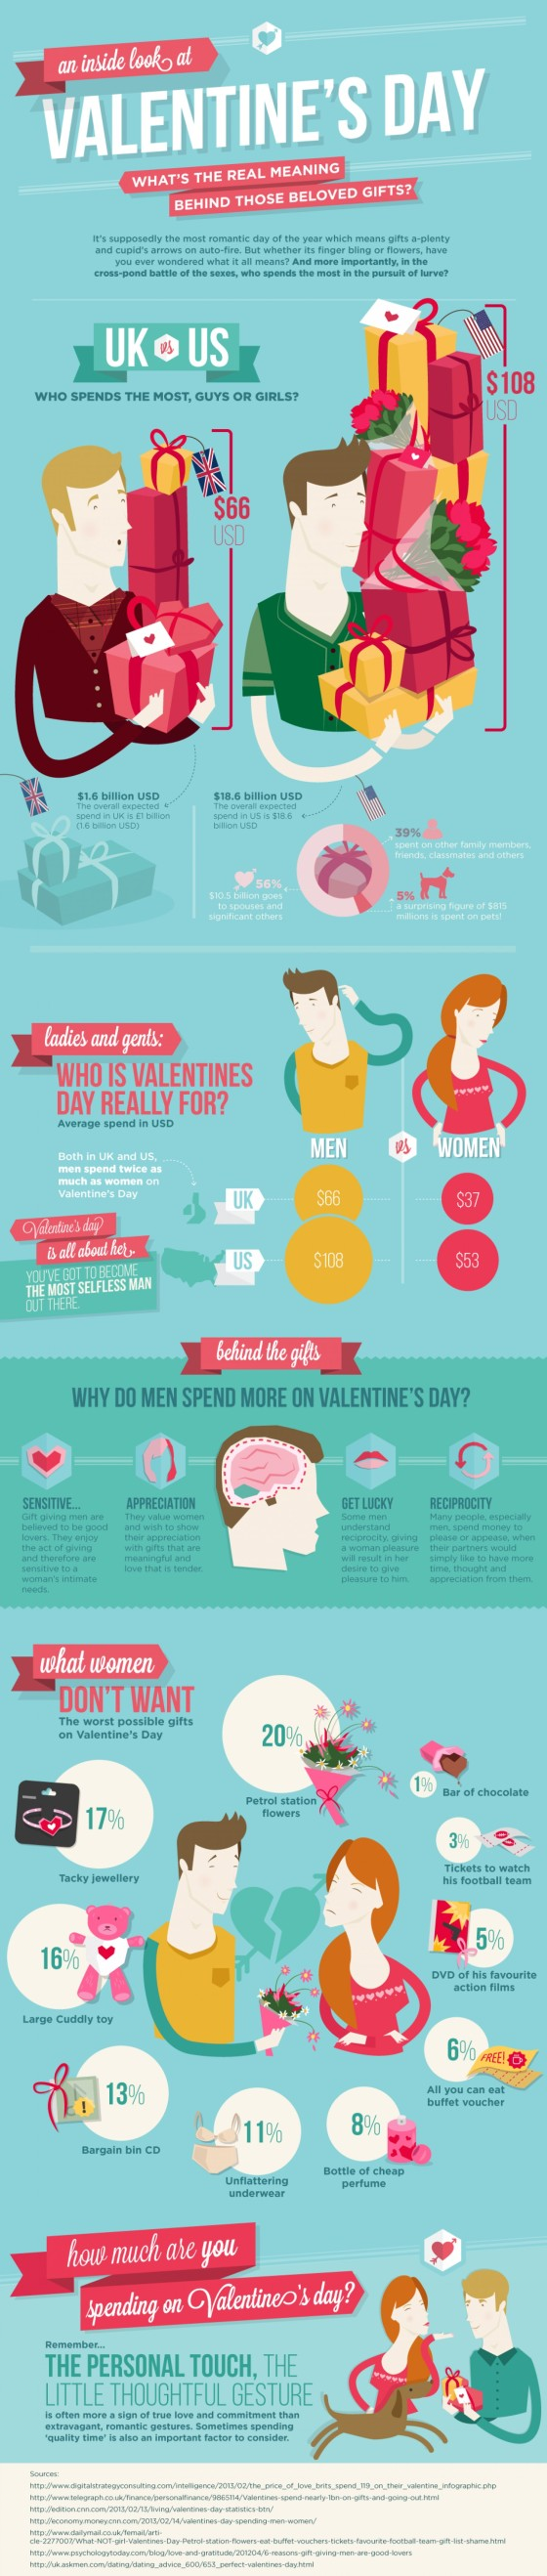 Infographic : Valentines Day Gifting